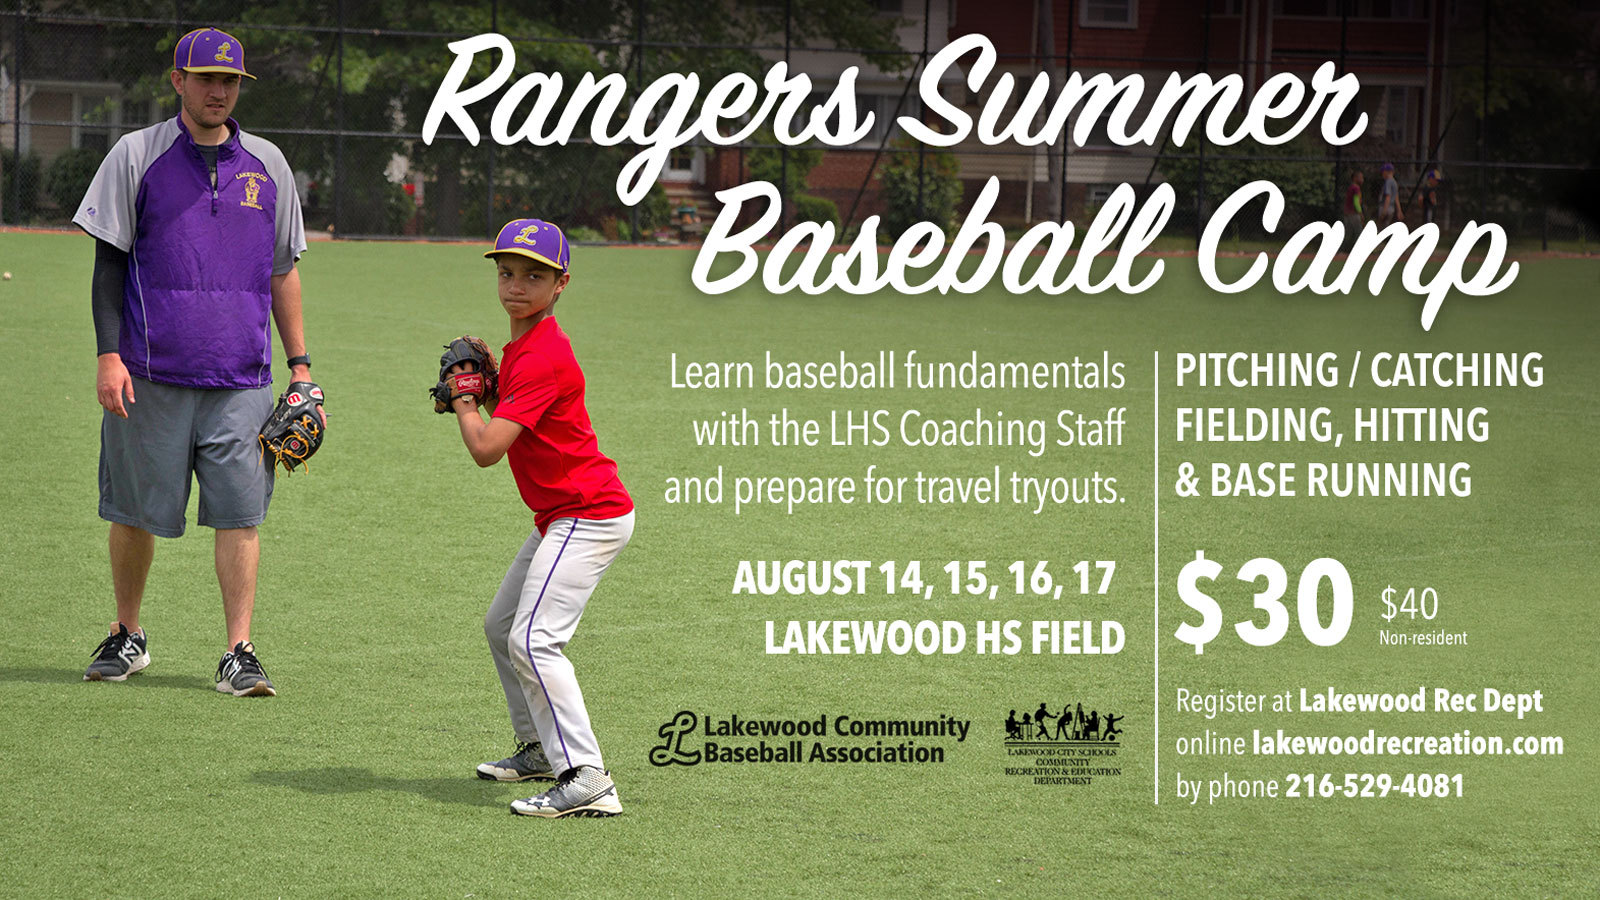 Lakewood Rangers Summer Baseball Camp